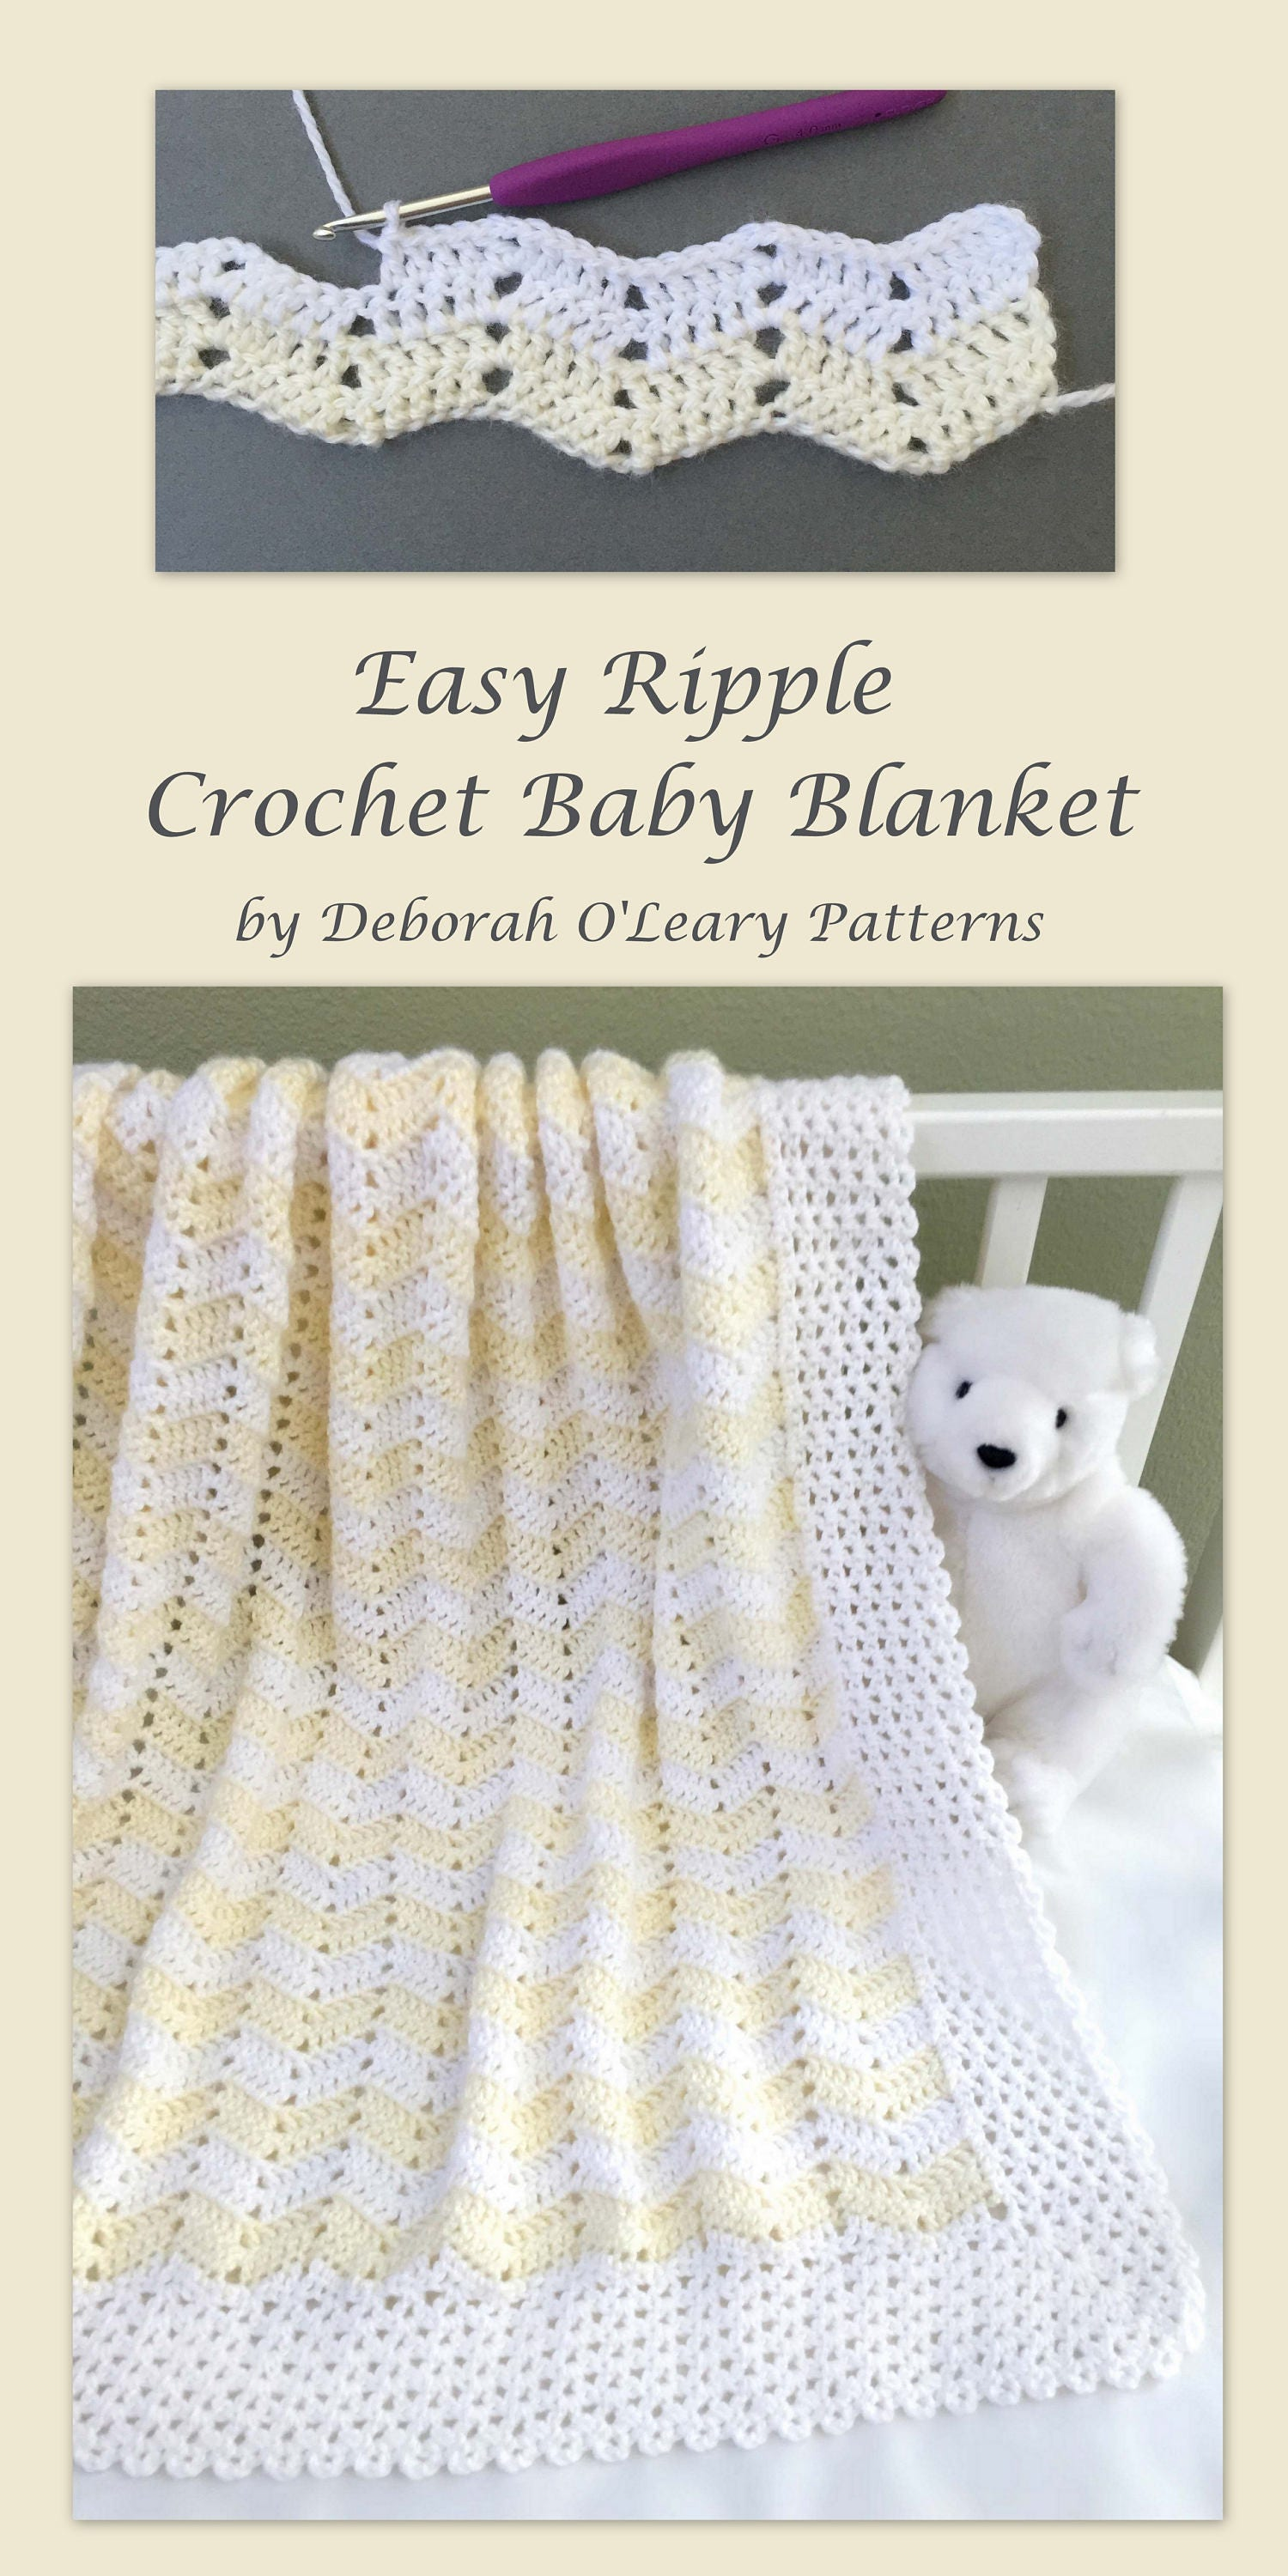 Crochet Baby Blanket Pattern Easy Ripple Baby Blanket | Etsy